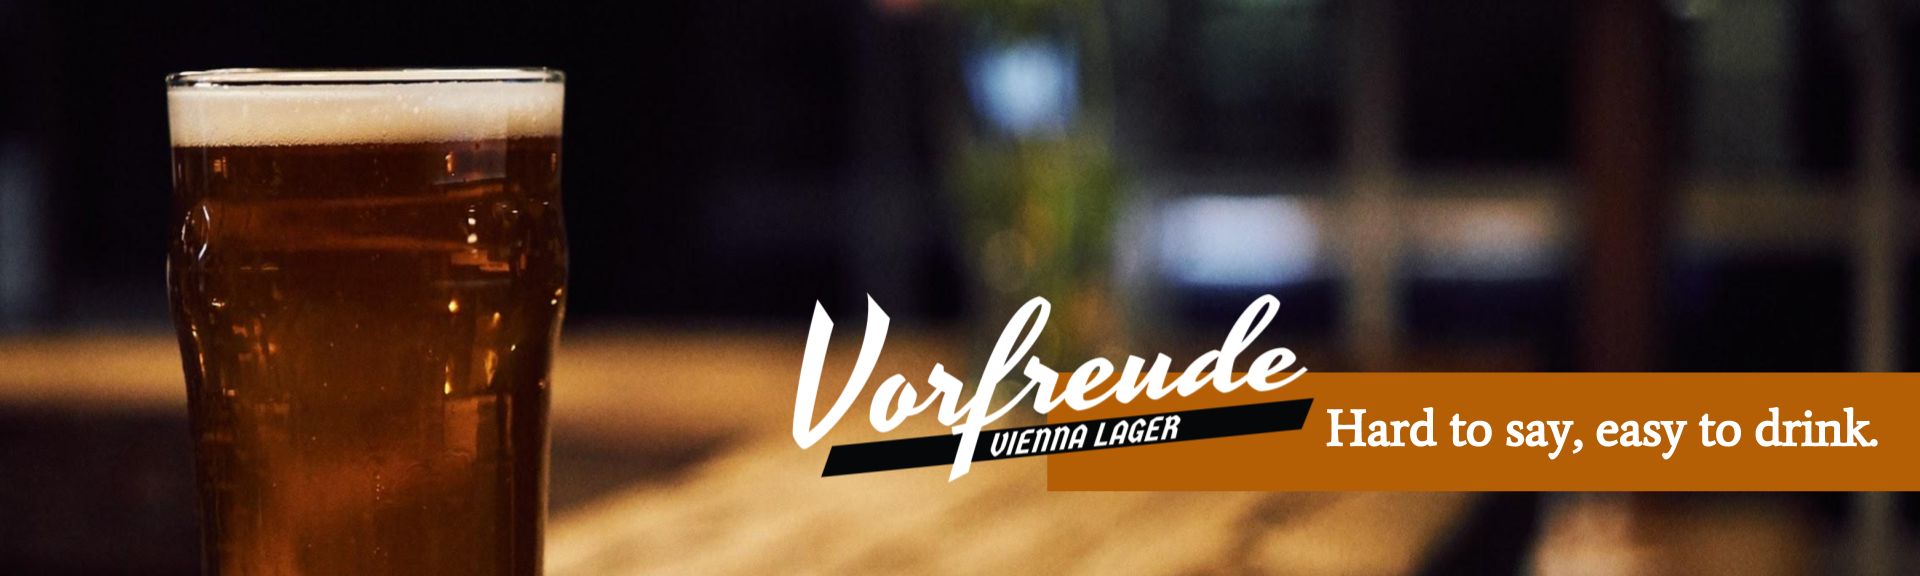 Vorfreude Vienna Lager Hard to Say Easy to Drink